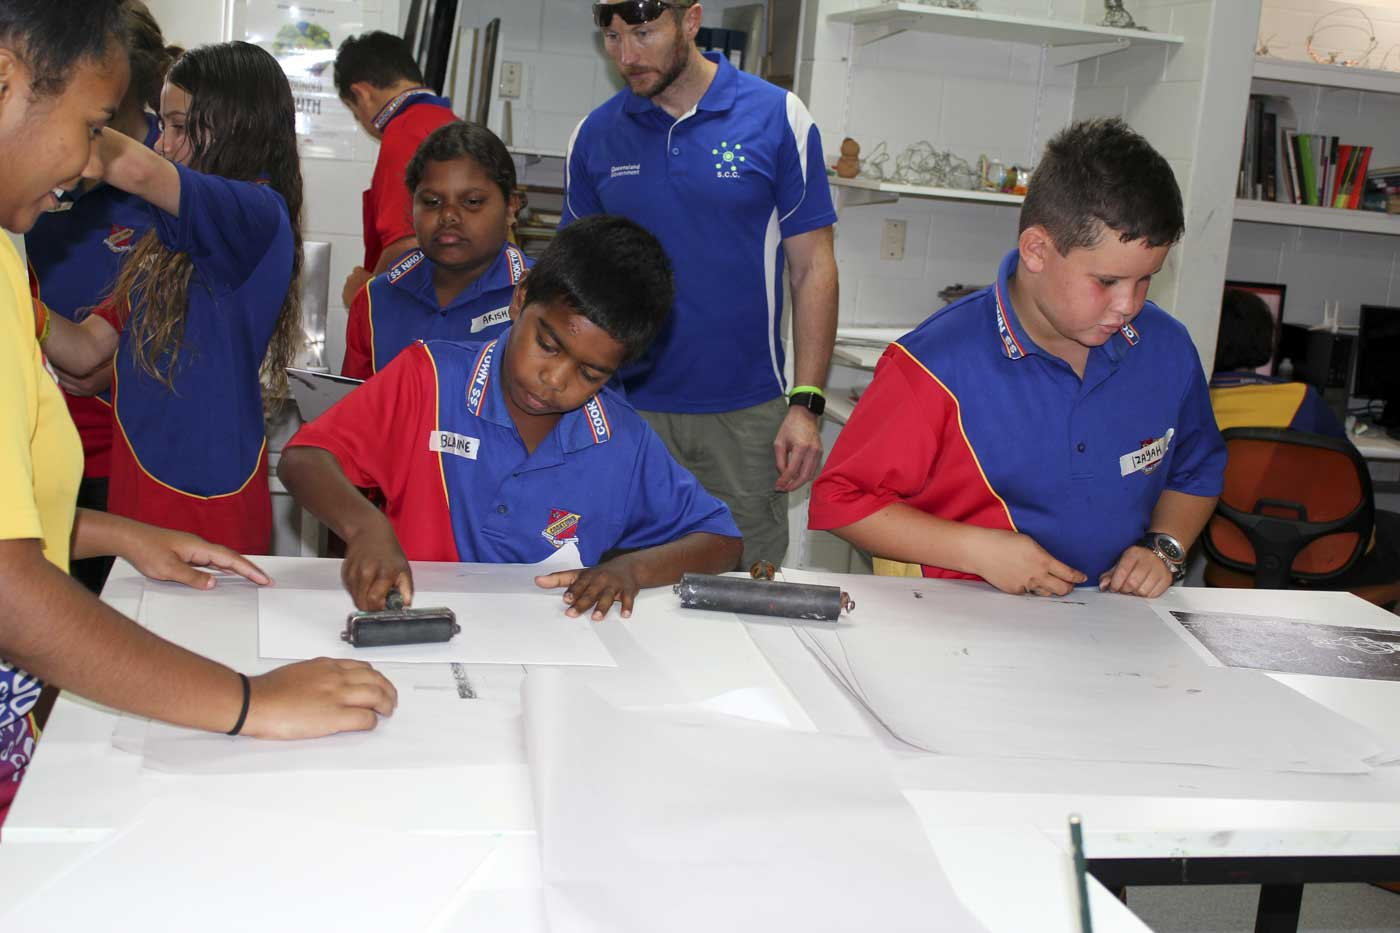 Primary school students attend a print making class. - click to view larger image